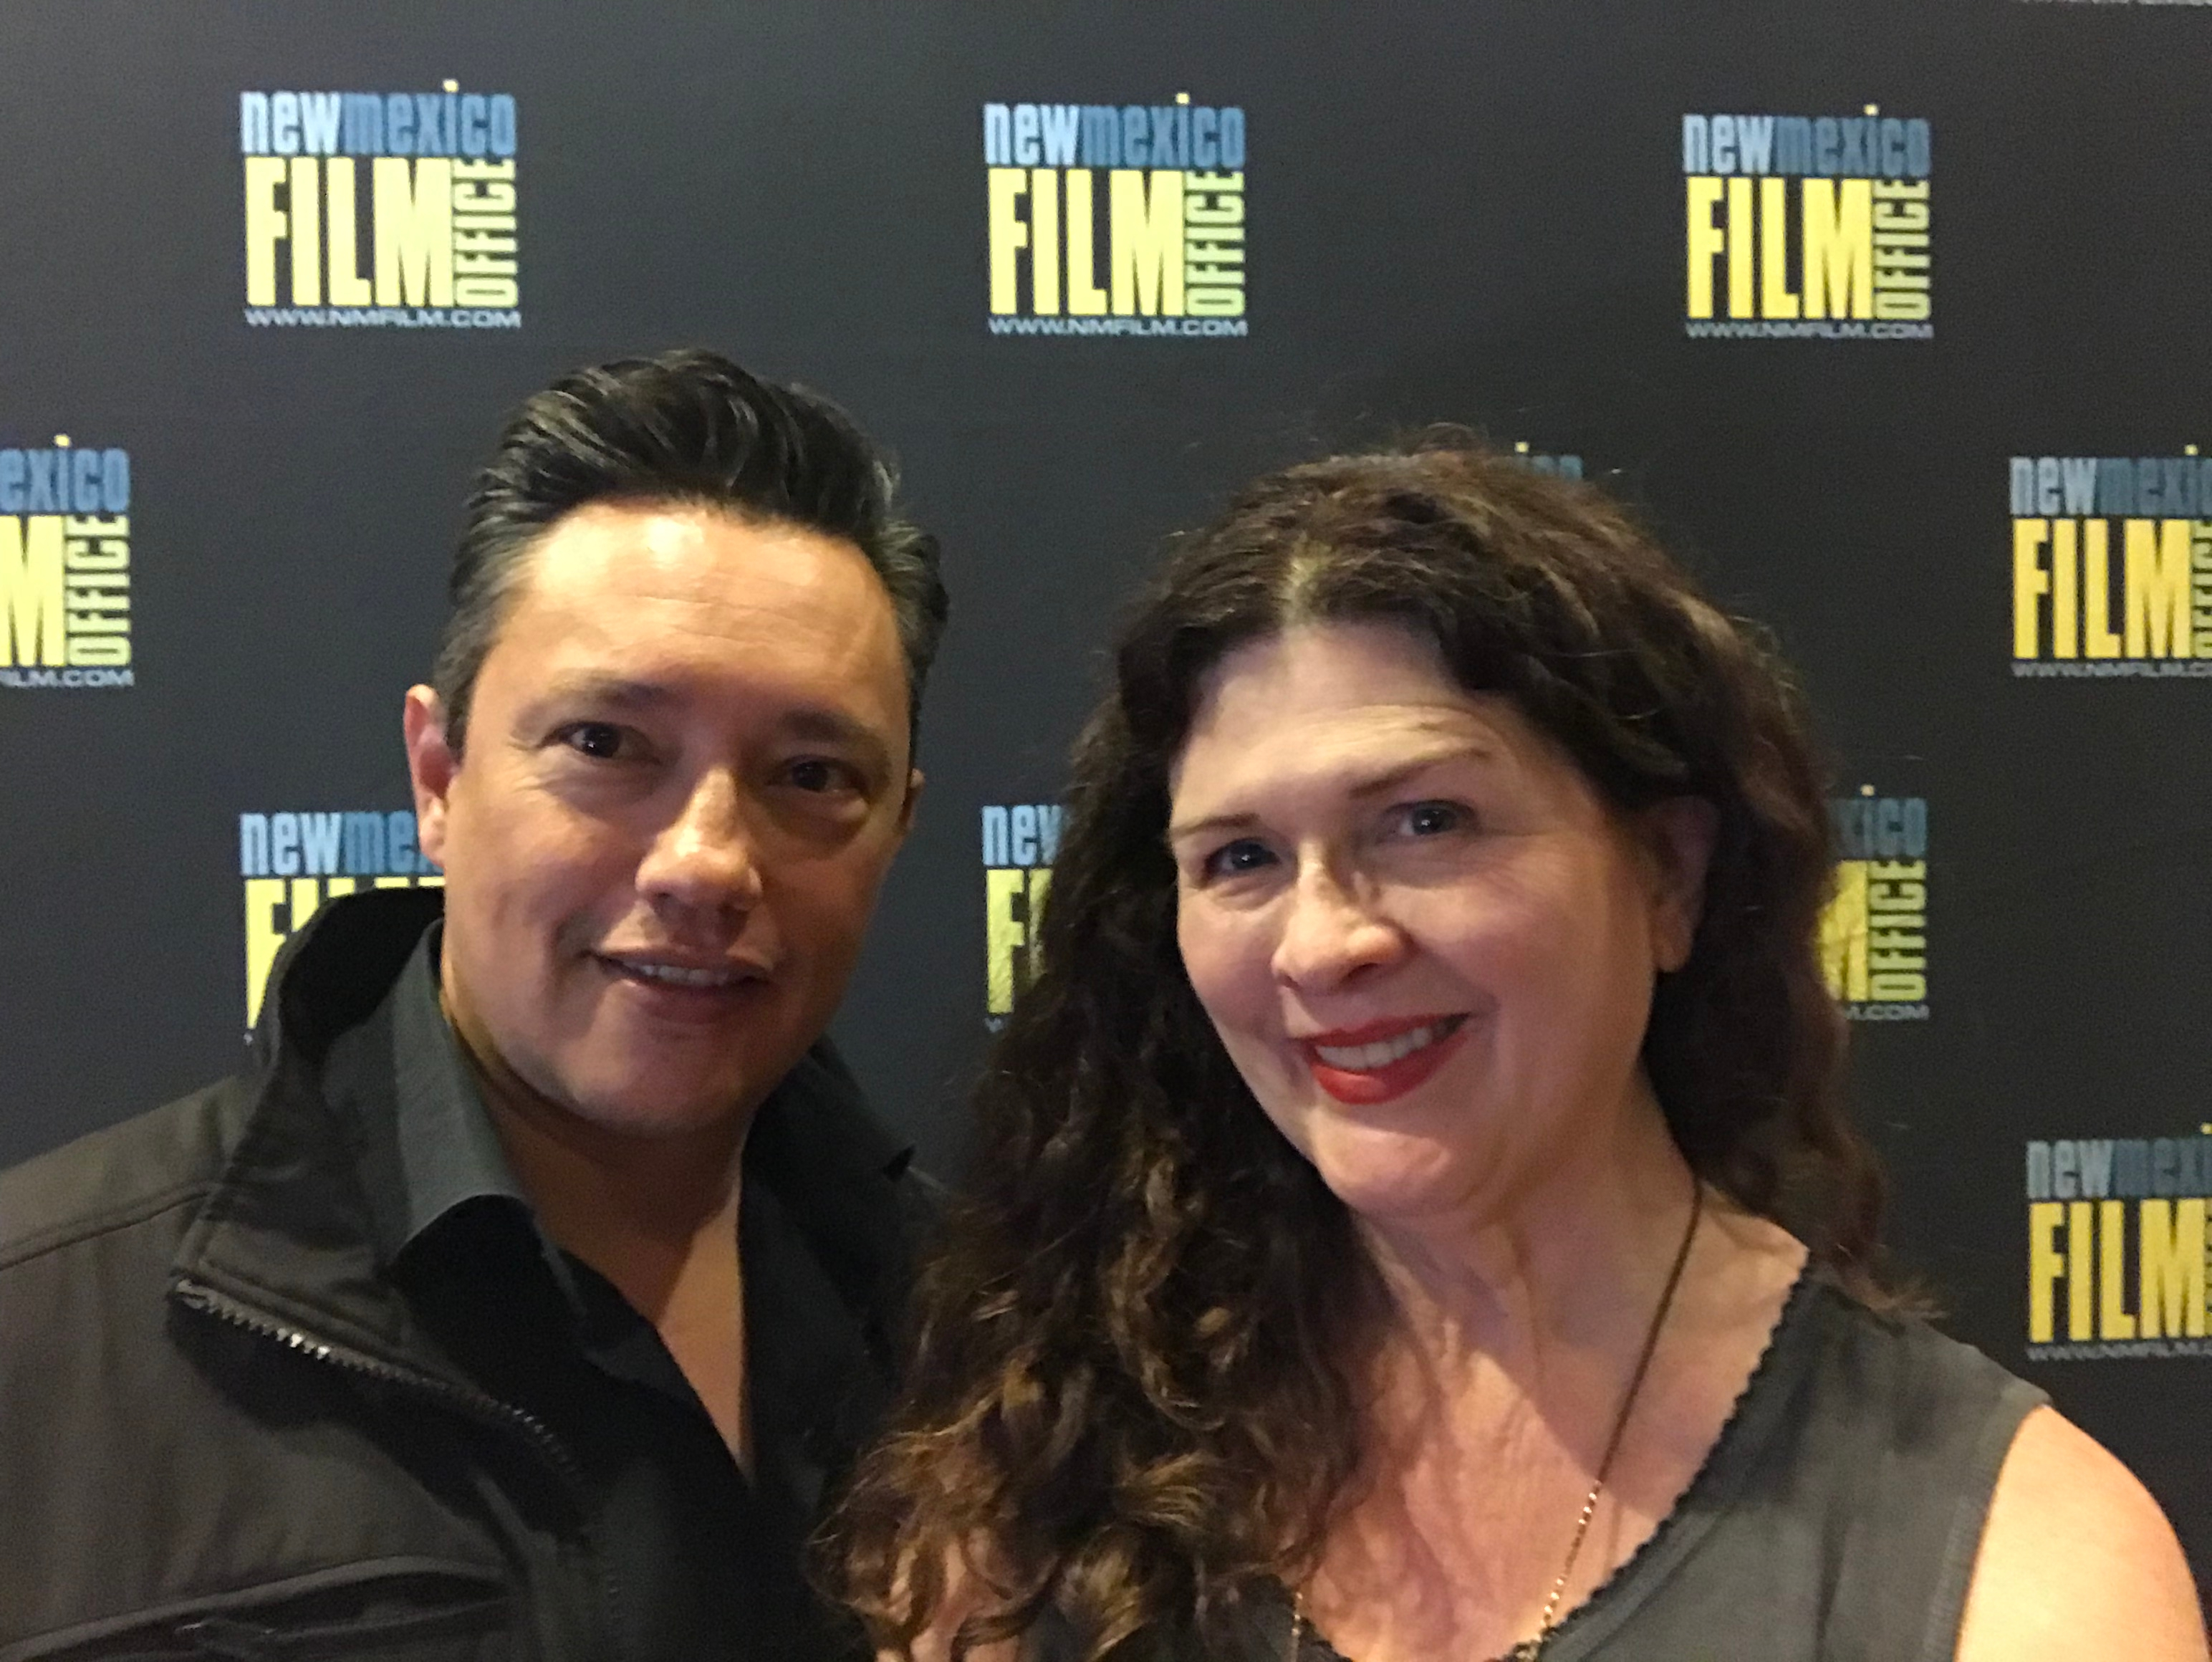 Jennifer H Caldwell and Armando D'Aguero at NM Film Conference